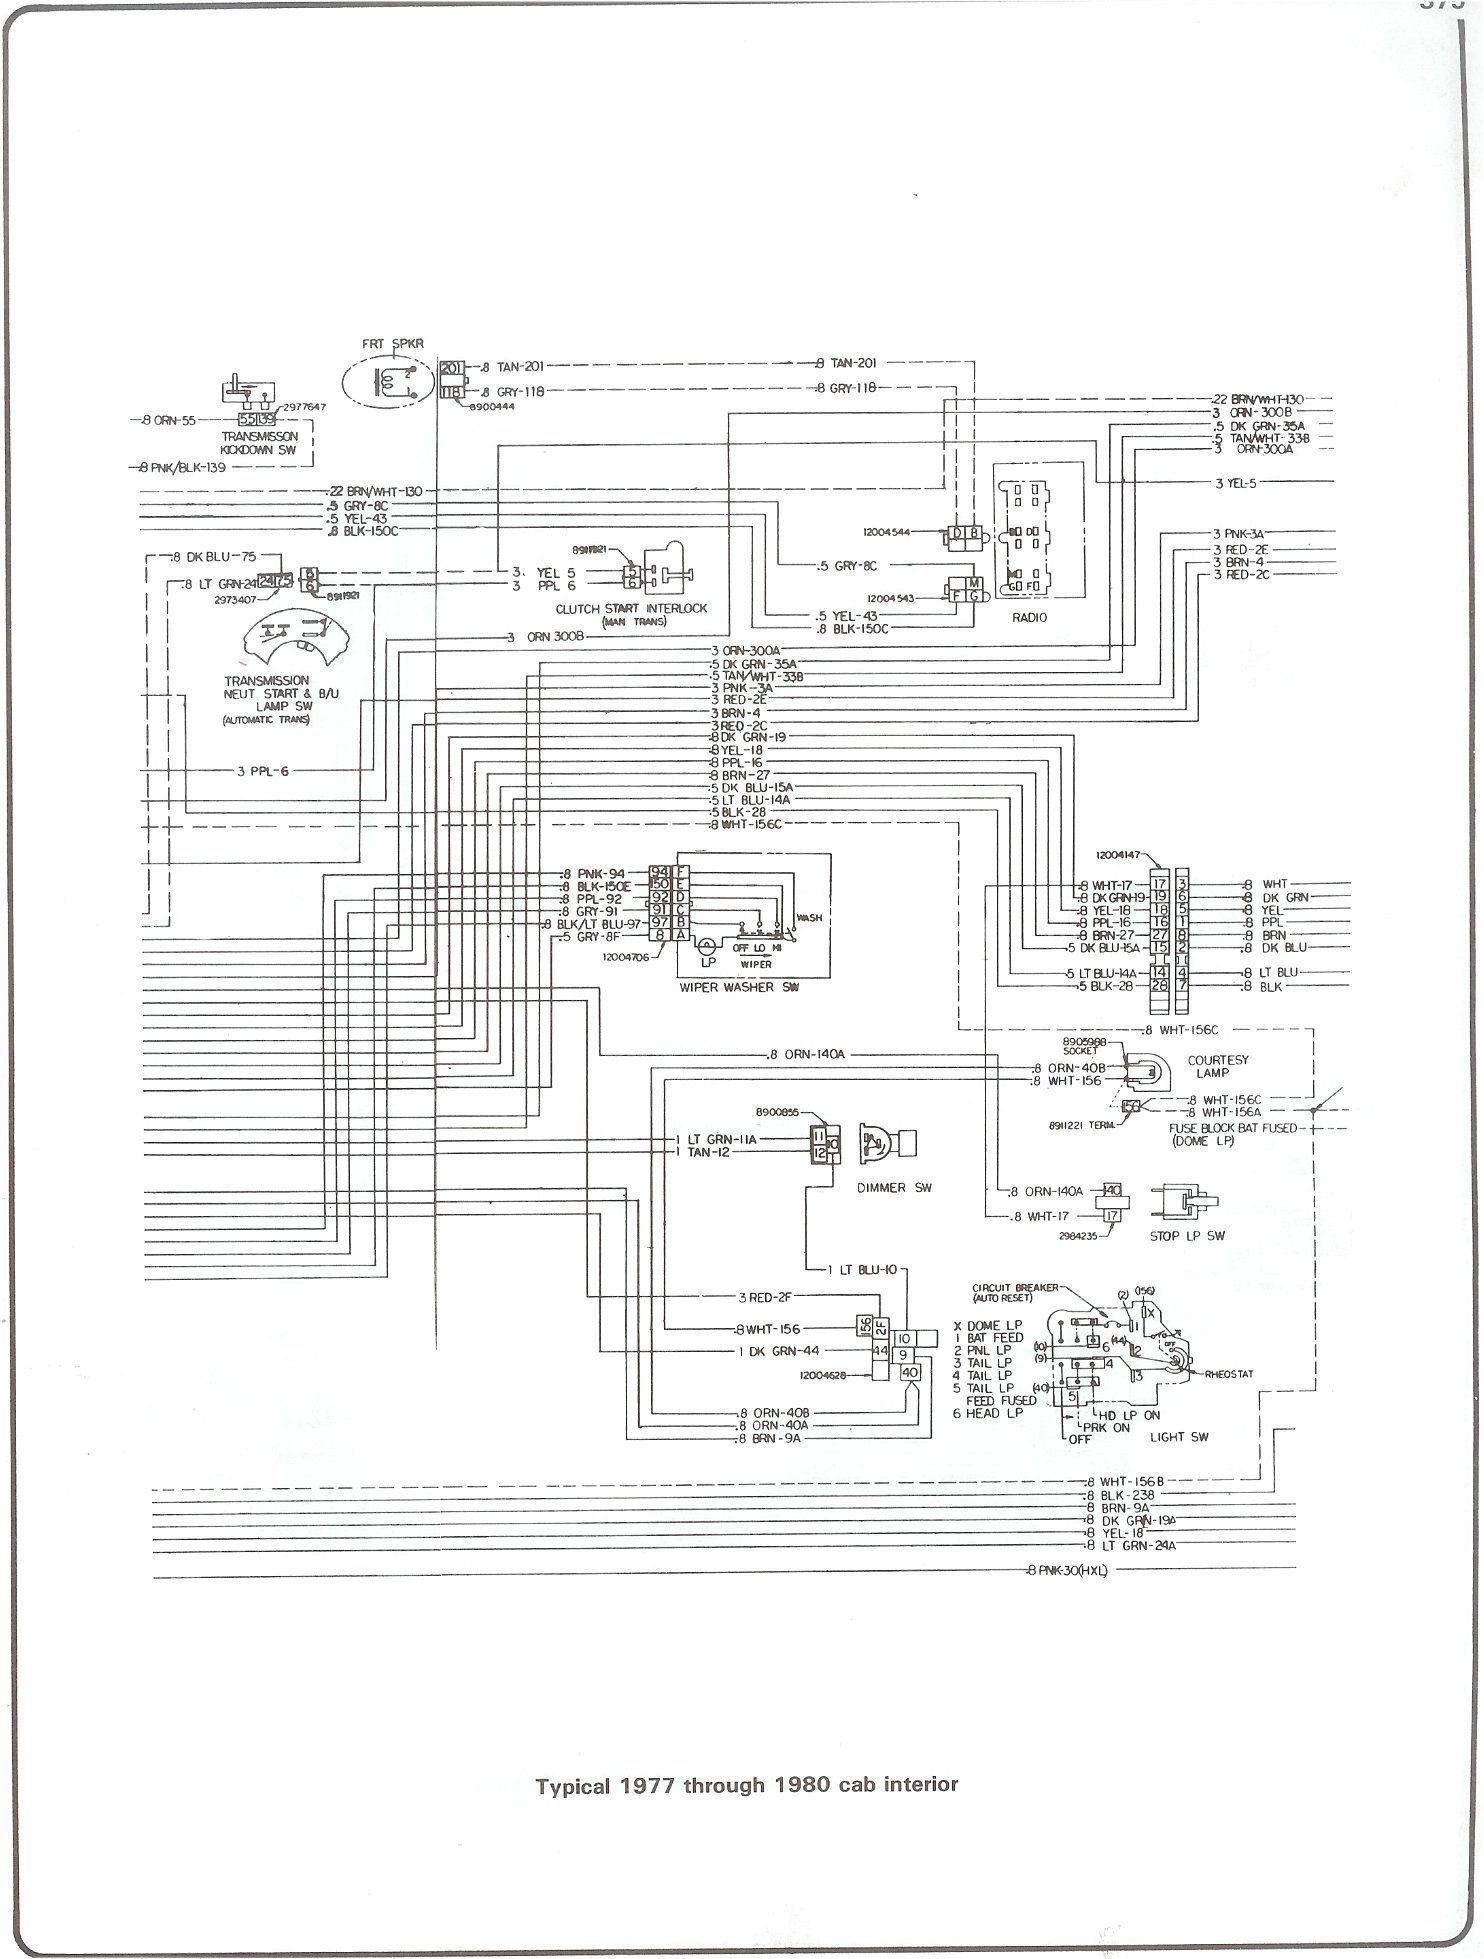 77 80_cab_inter chevy truck underhood wiring diagrams chuck's chevy truck pages wiring diagram for 1970 chevy c10 at n-0.co